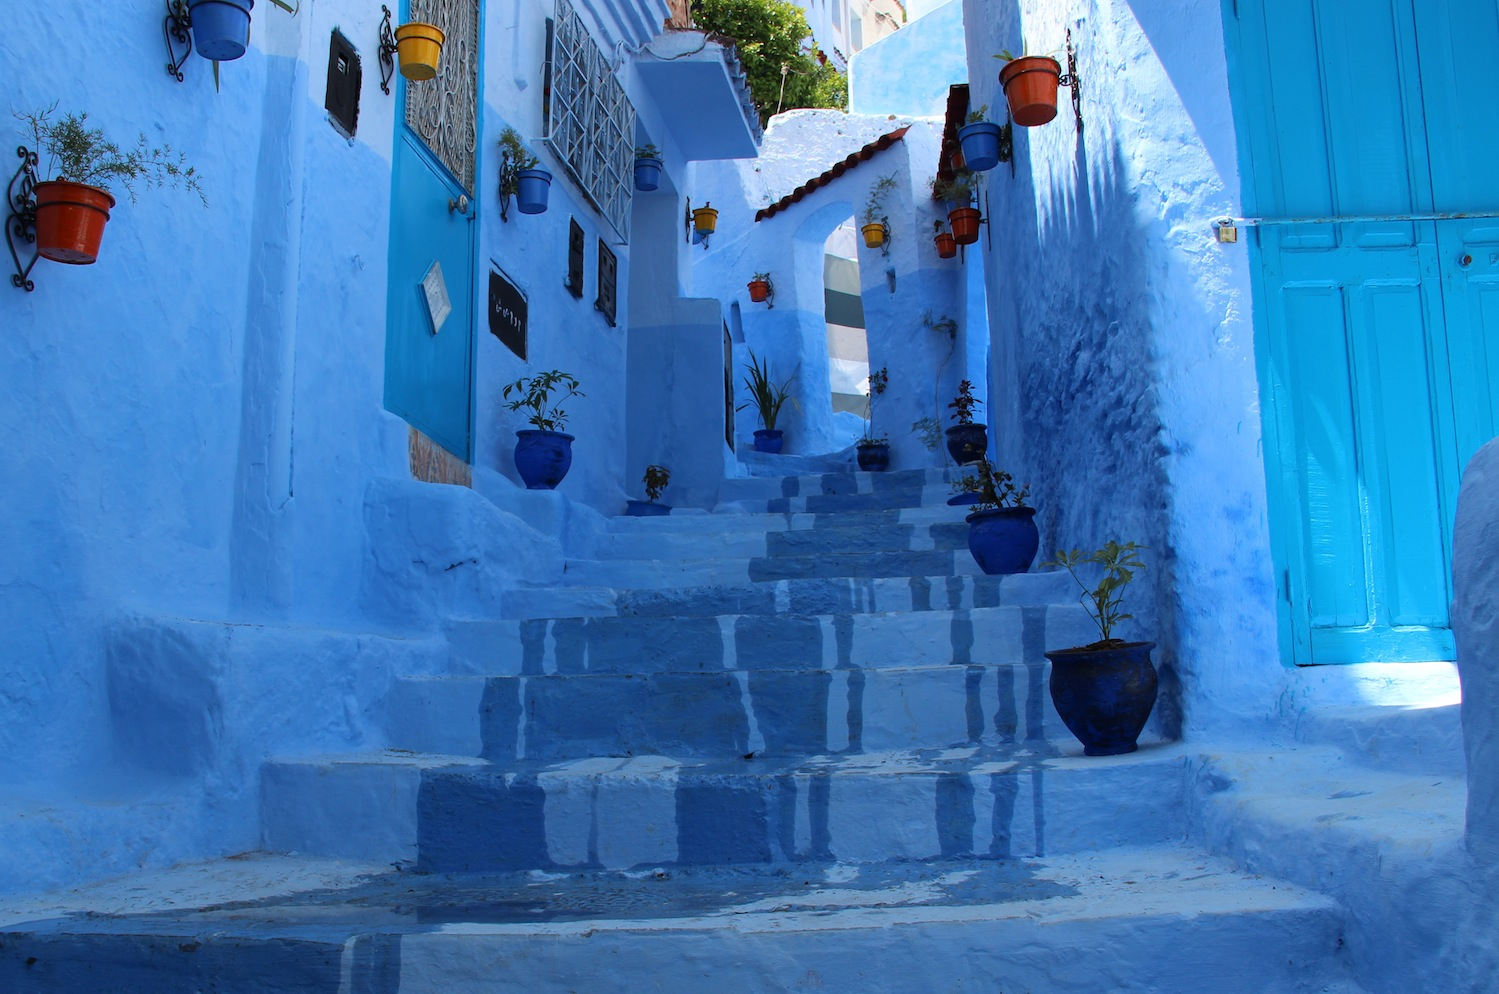 Morocco's-Most-Historic-Sites-Chefchaouen